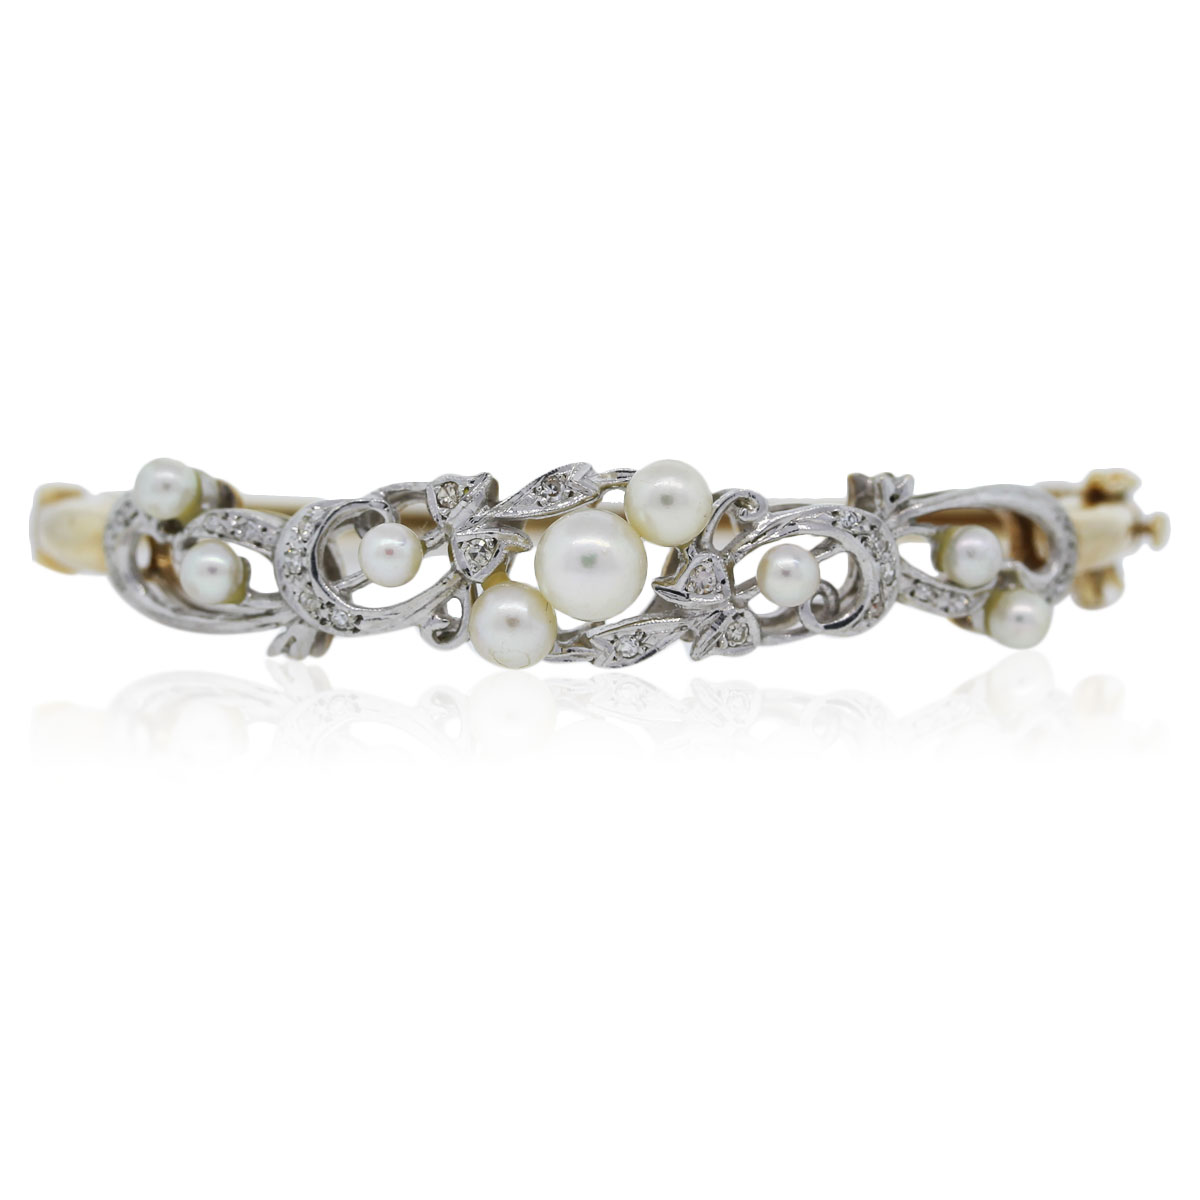 You are viewing this Vintage Yellow Gold Diamond and Pearl Bracelet!!